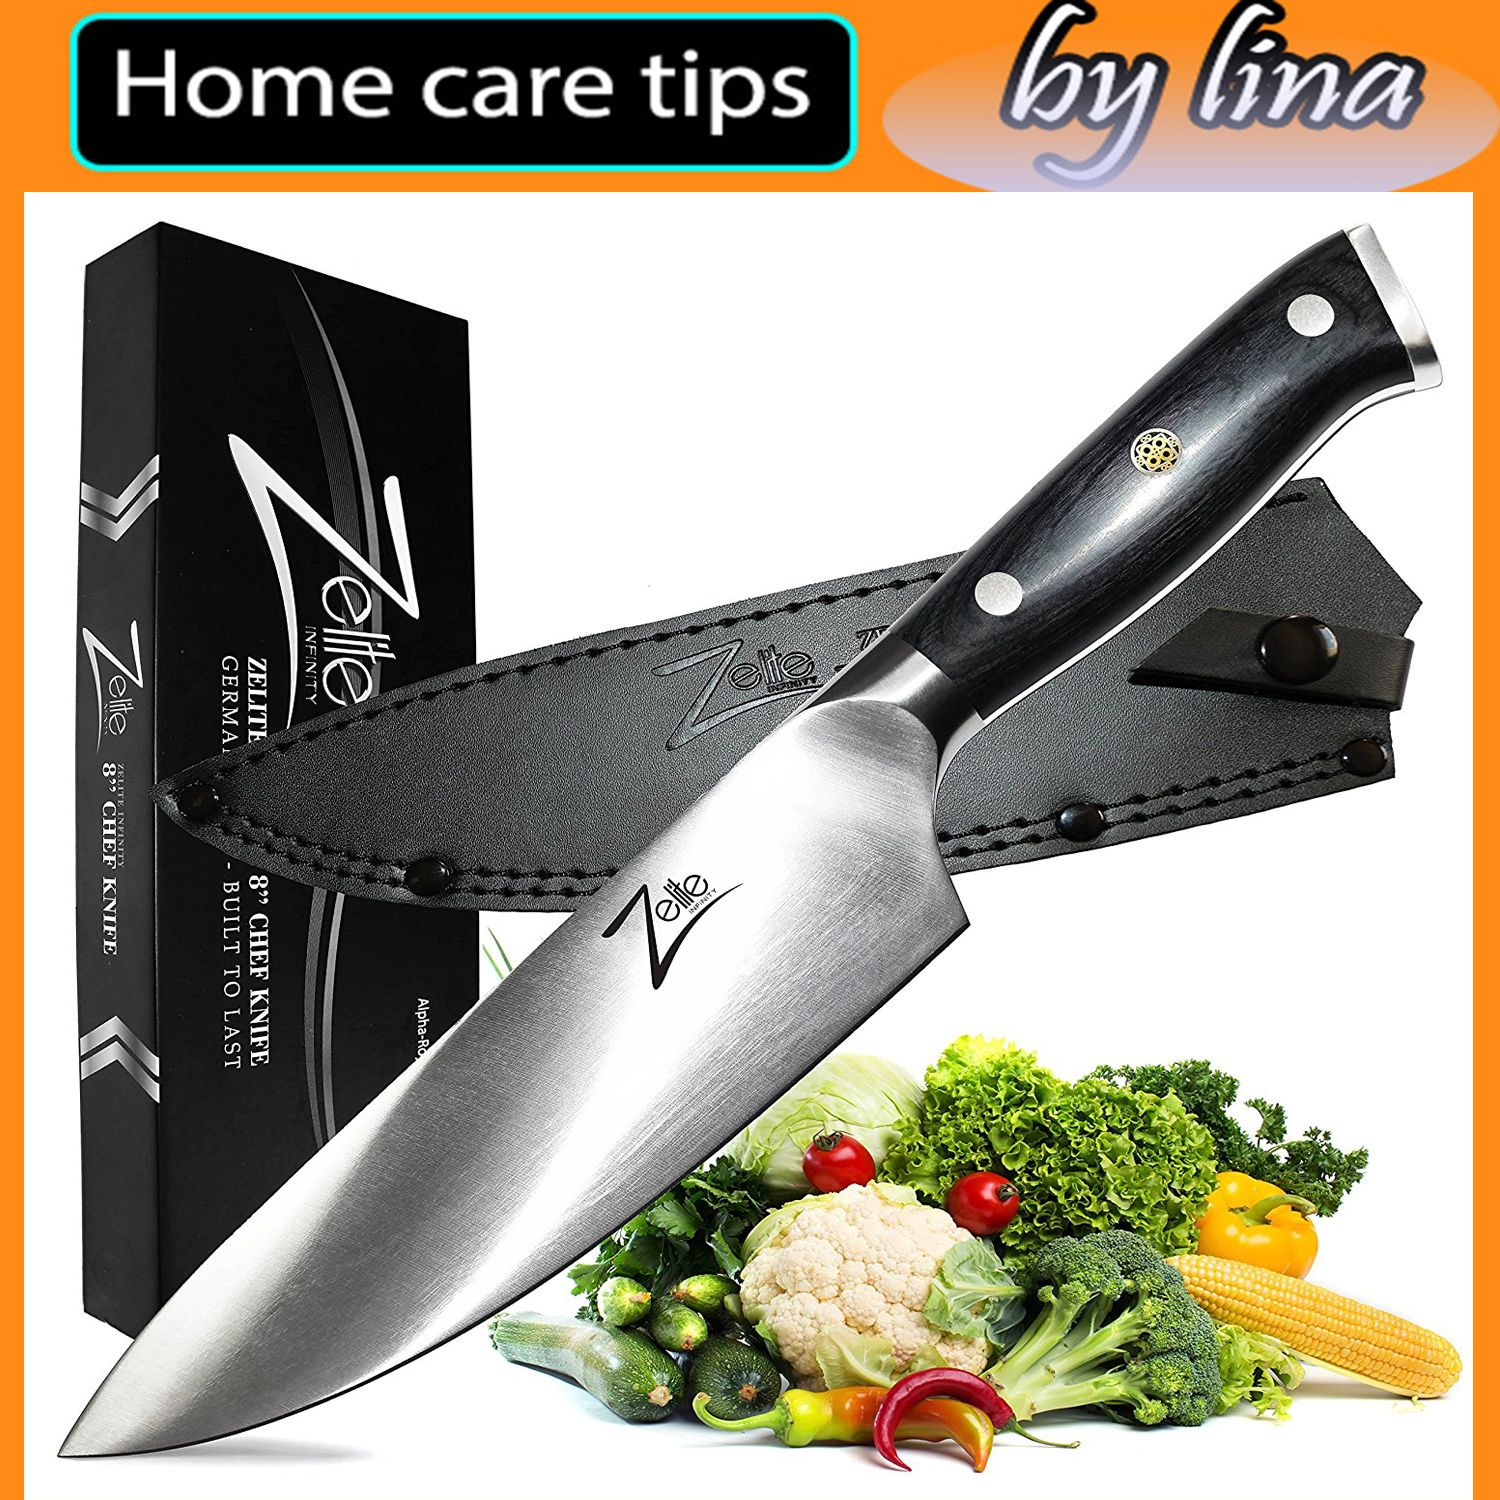 Best Kitchen Knives Very Successful Kitchen Knife Series Now Made